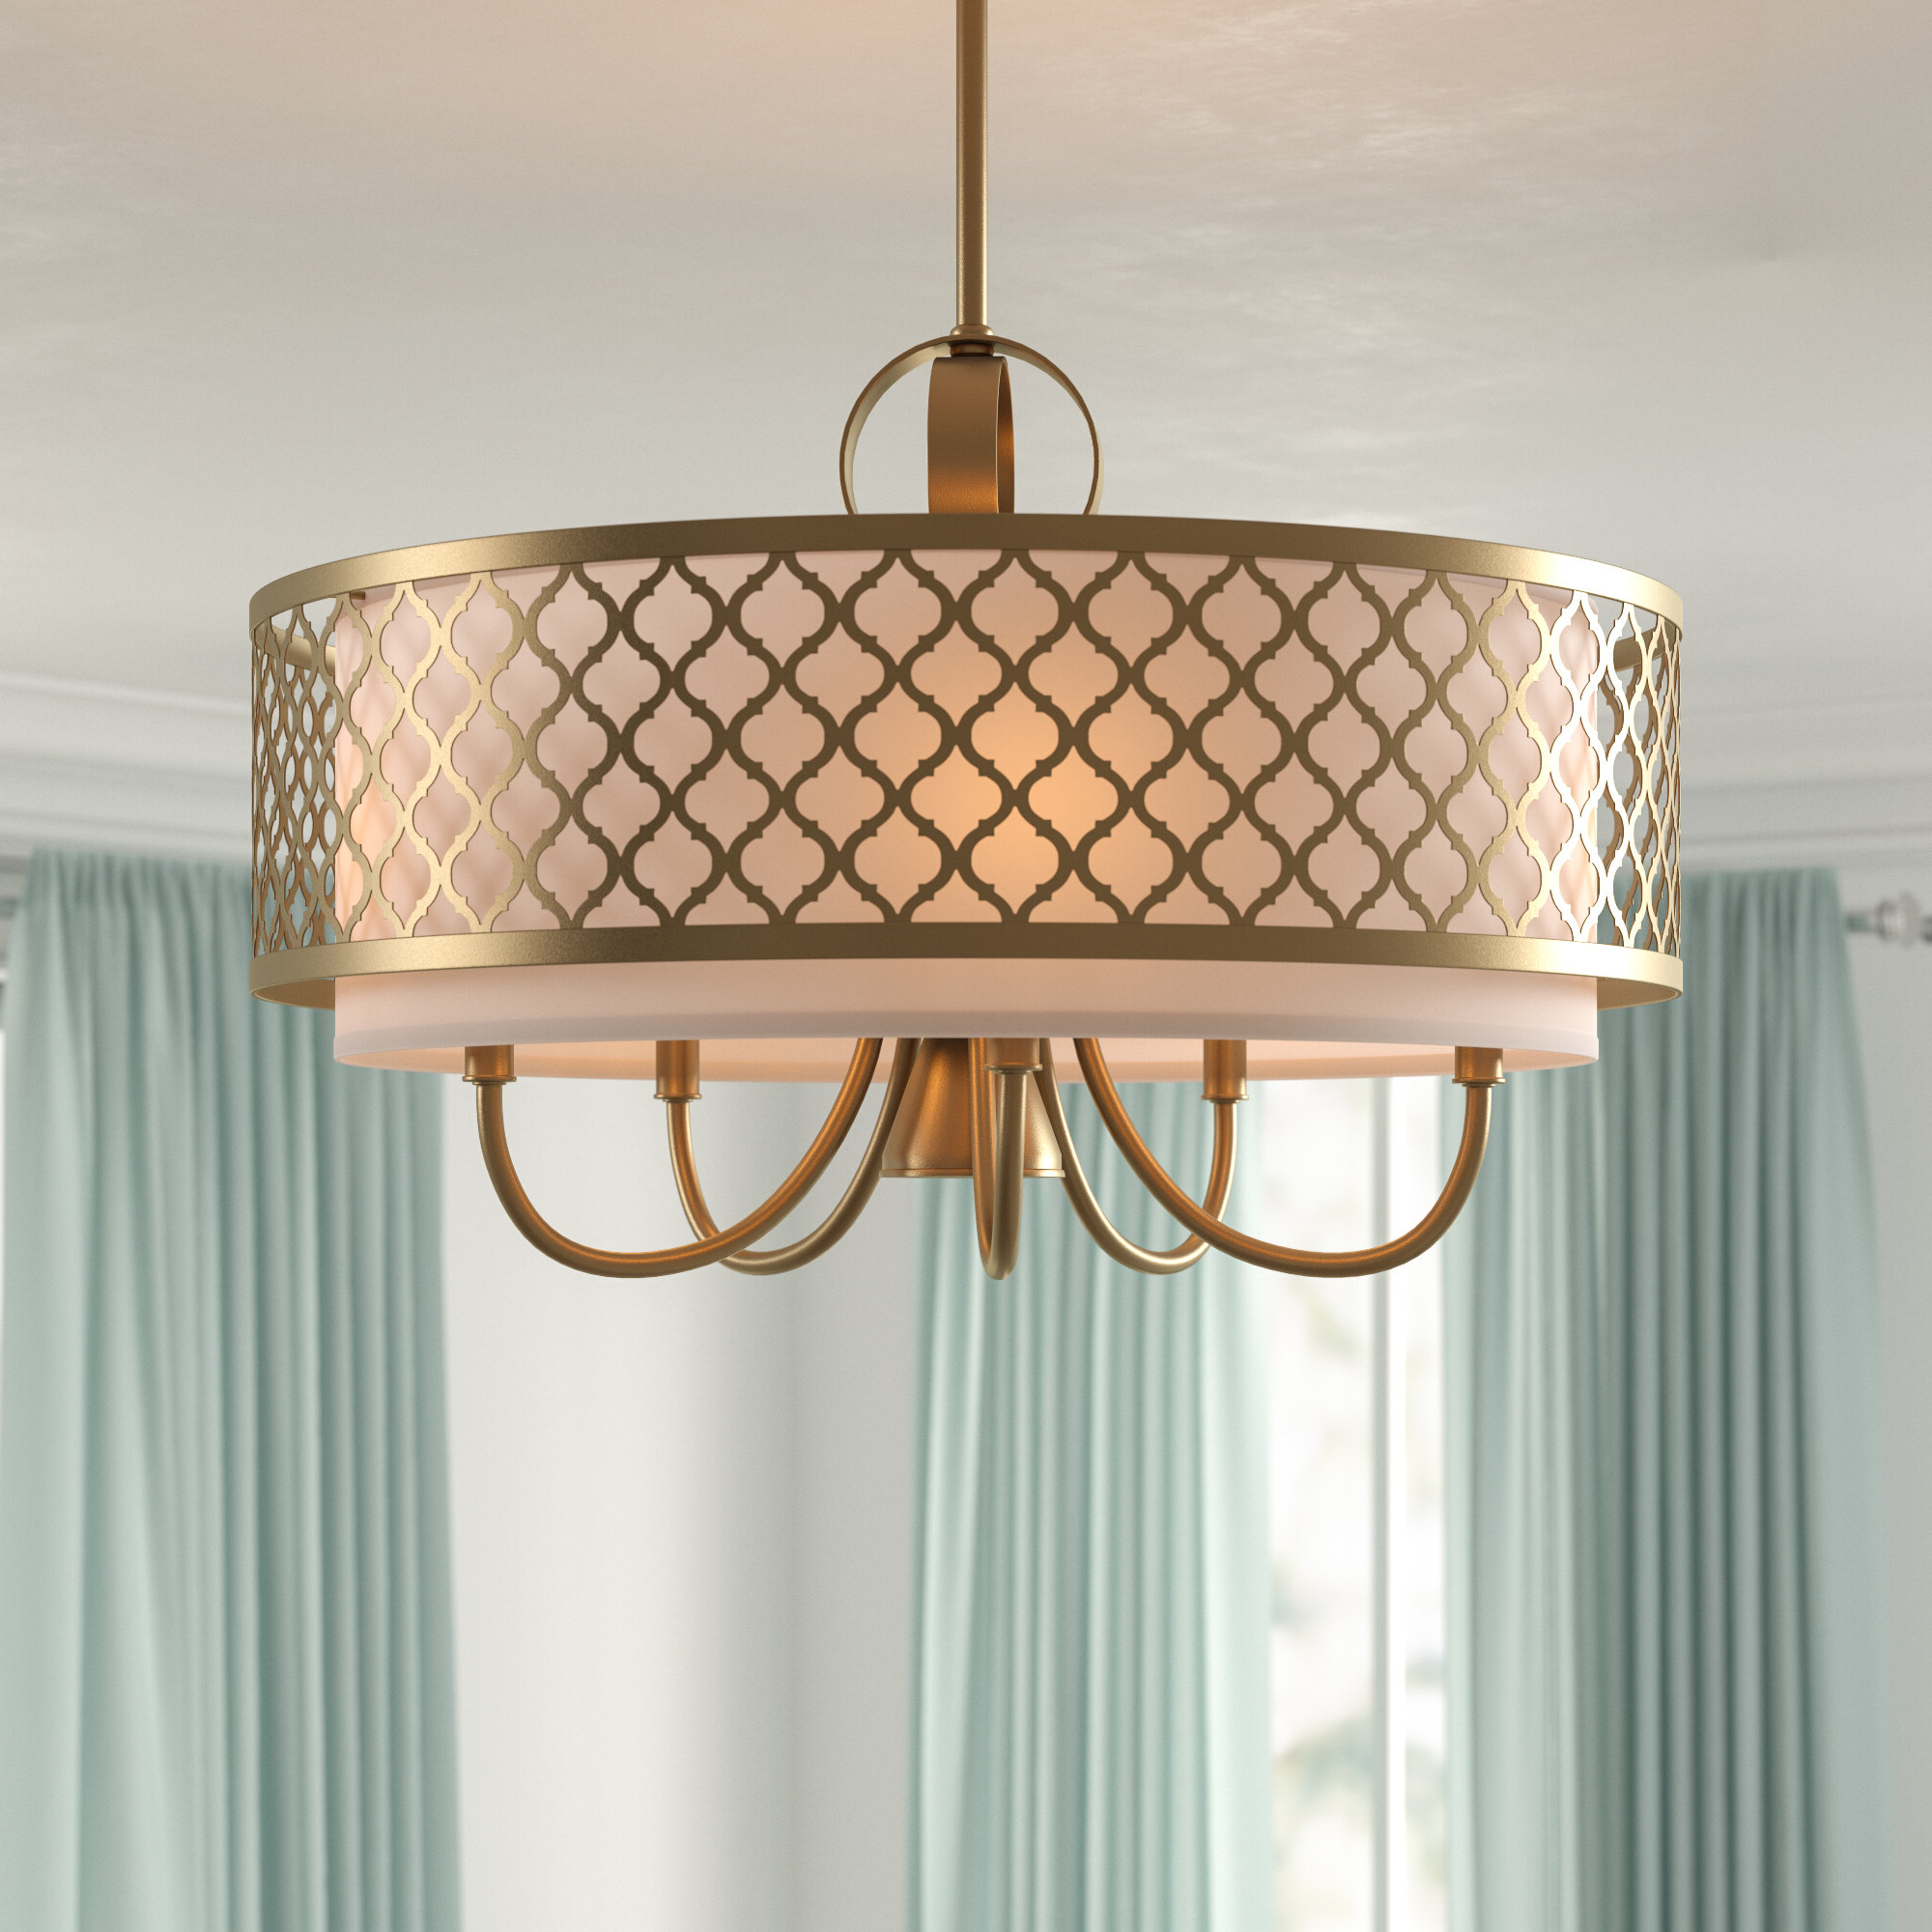 Burton 5 Light Drum Chandeliers Pertaining To Well Known Tymvou 6 Light Drum Chandelier (Gallery 18 of 20)